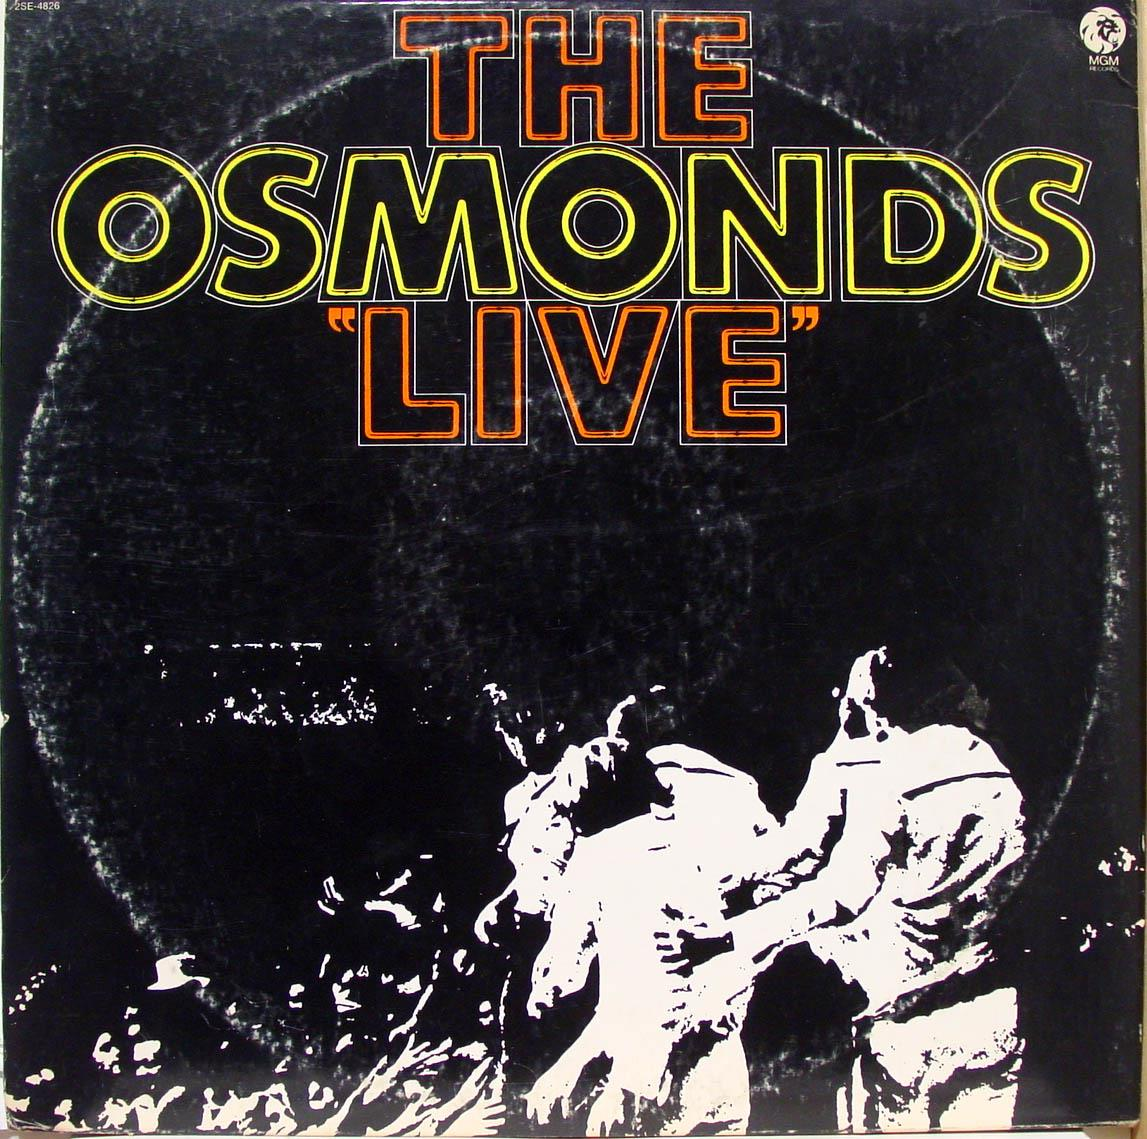 OSMONDS - The Osmonds Live Lp Vg+ 2se 4826 Vinyl Record (live)